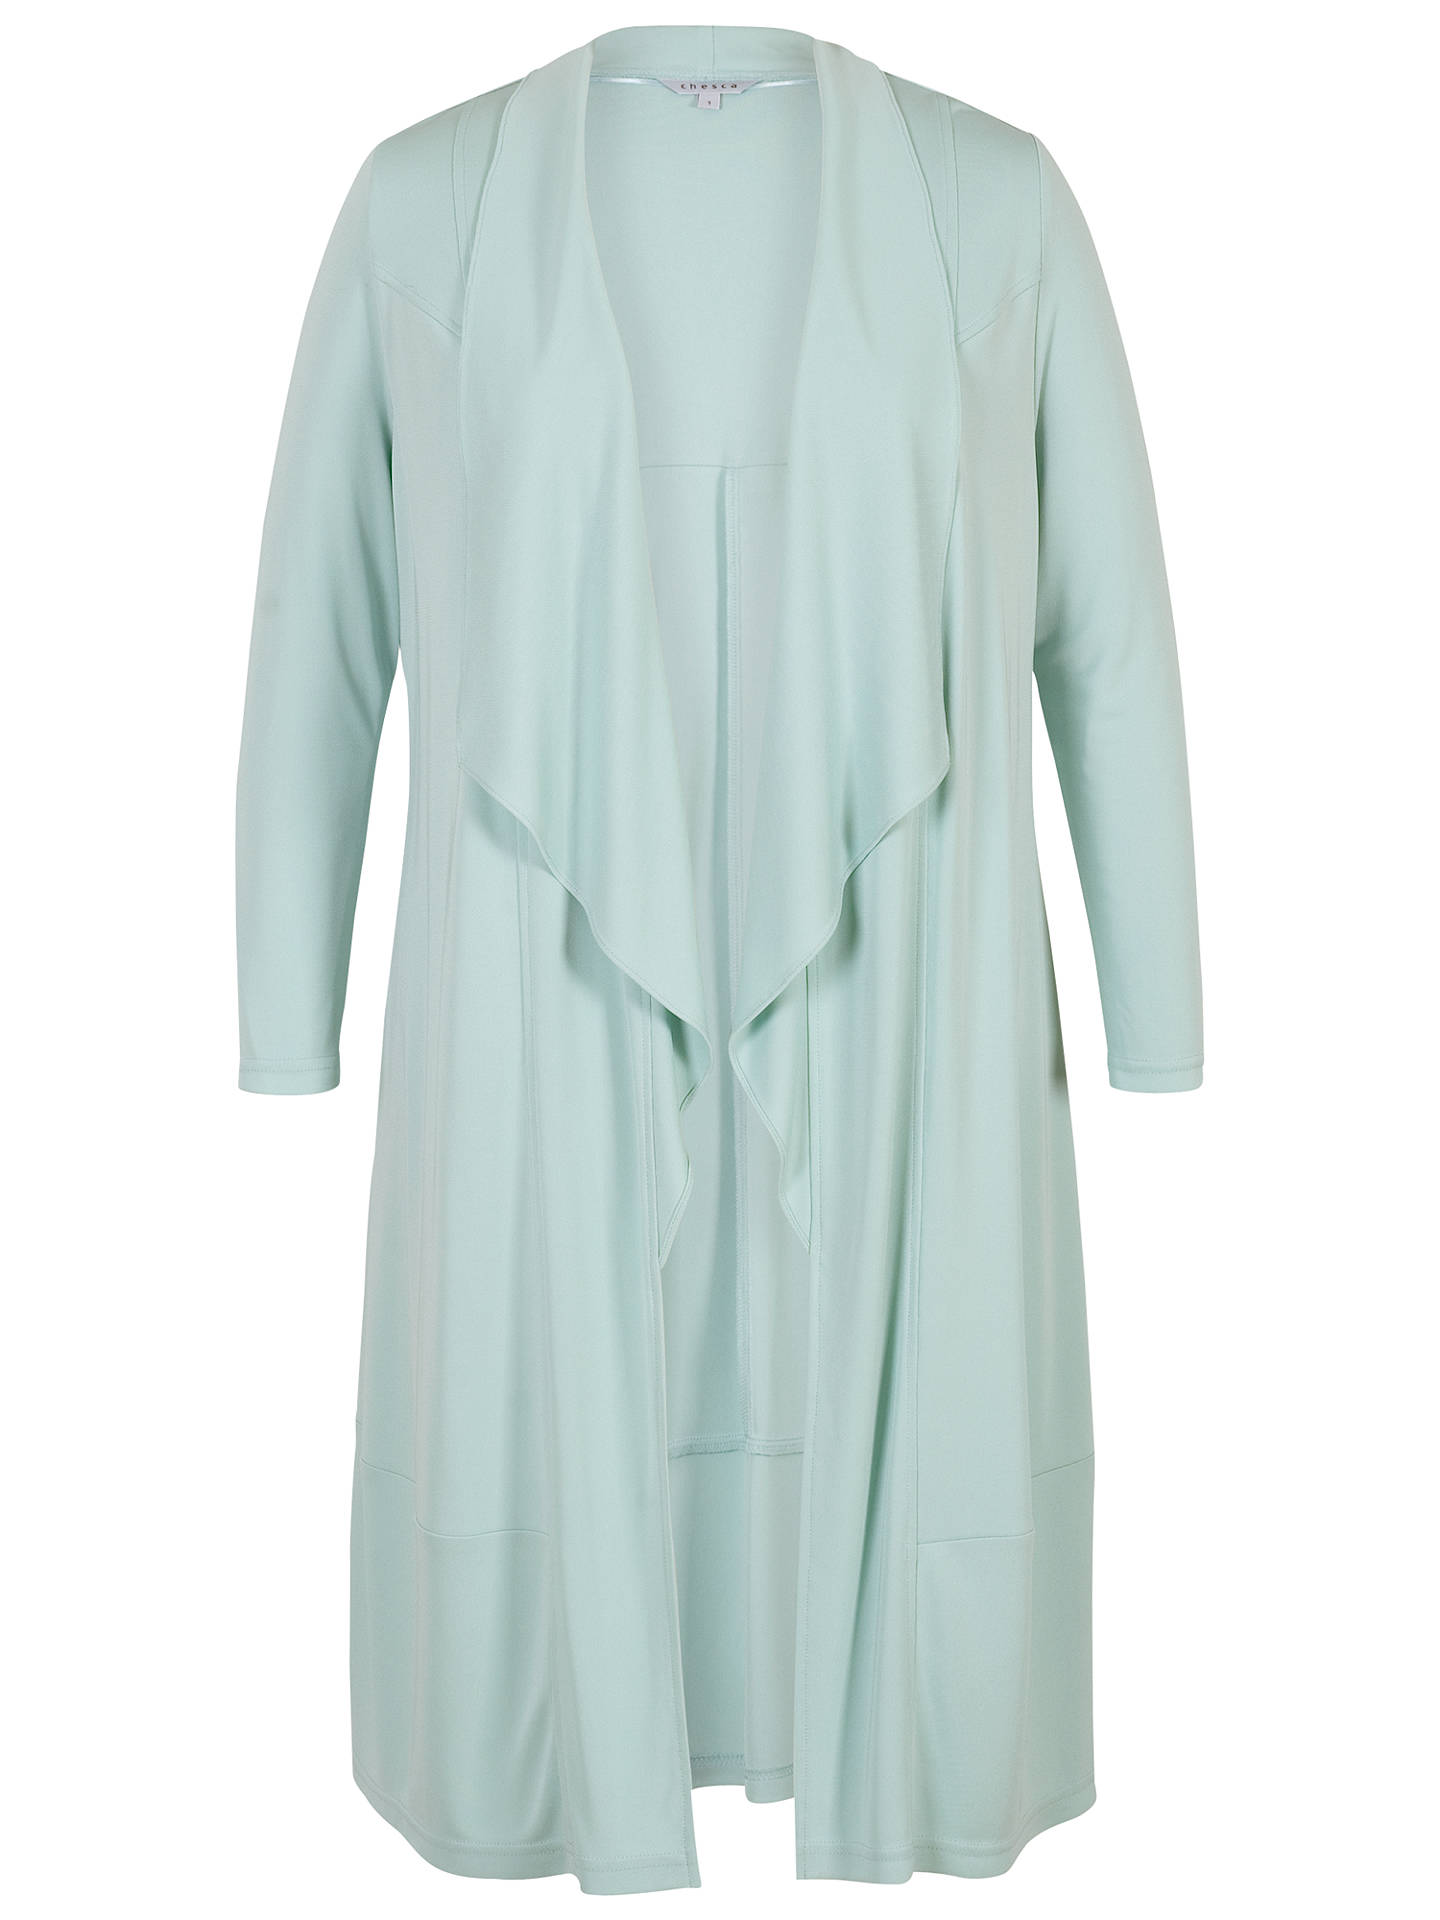 BuyChesca Shawl Collar Jersey Coat, Aqua, 12-14 Online at johnlewis.com